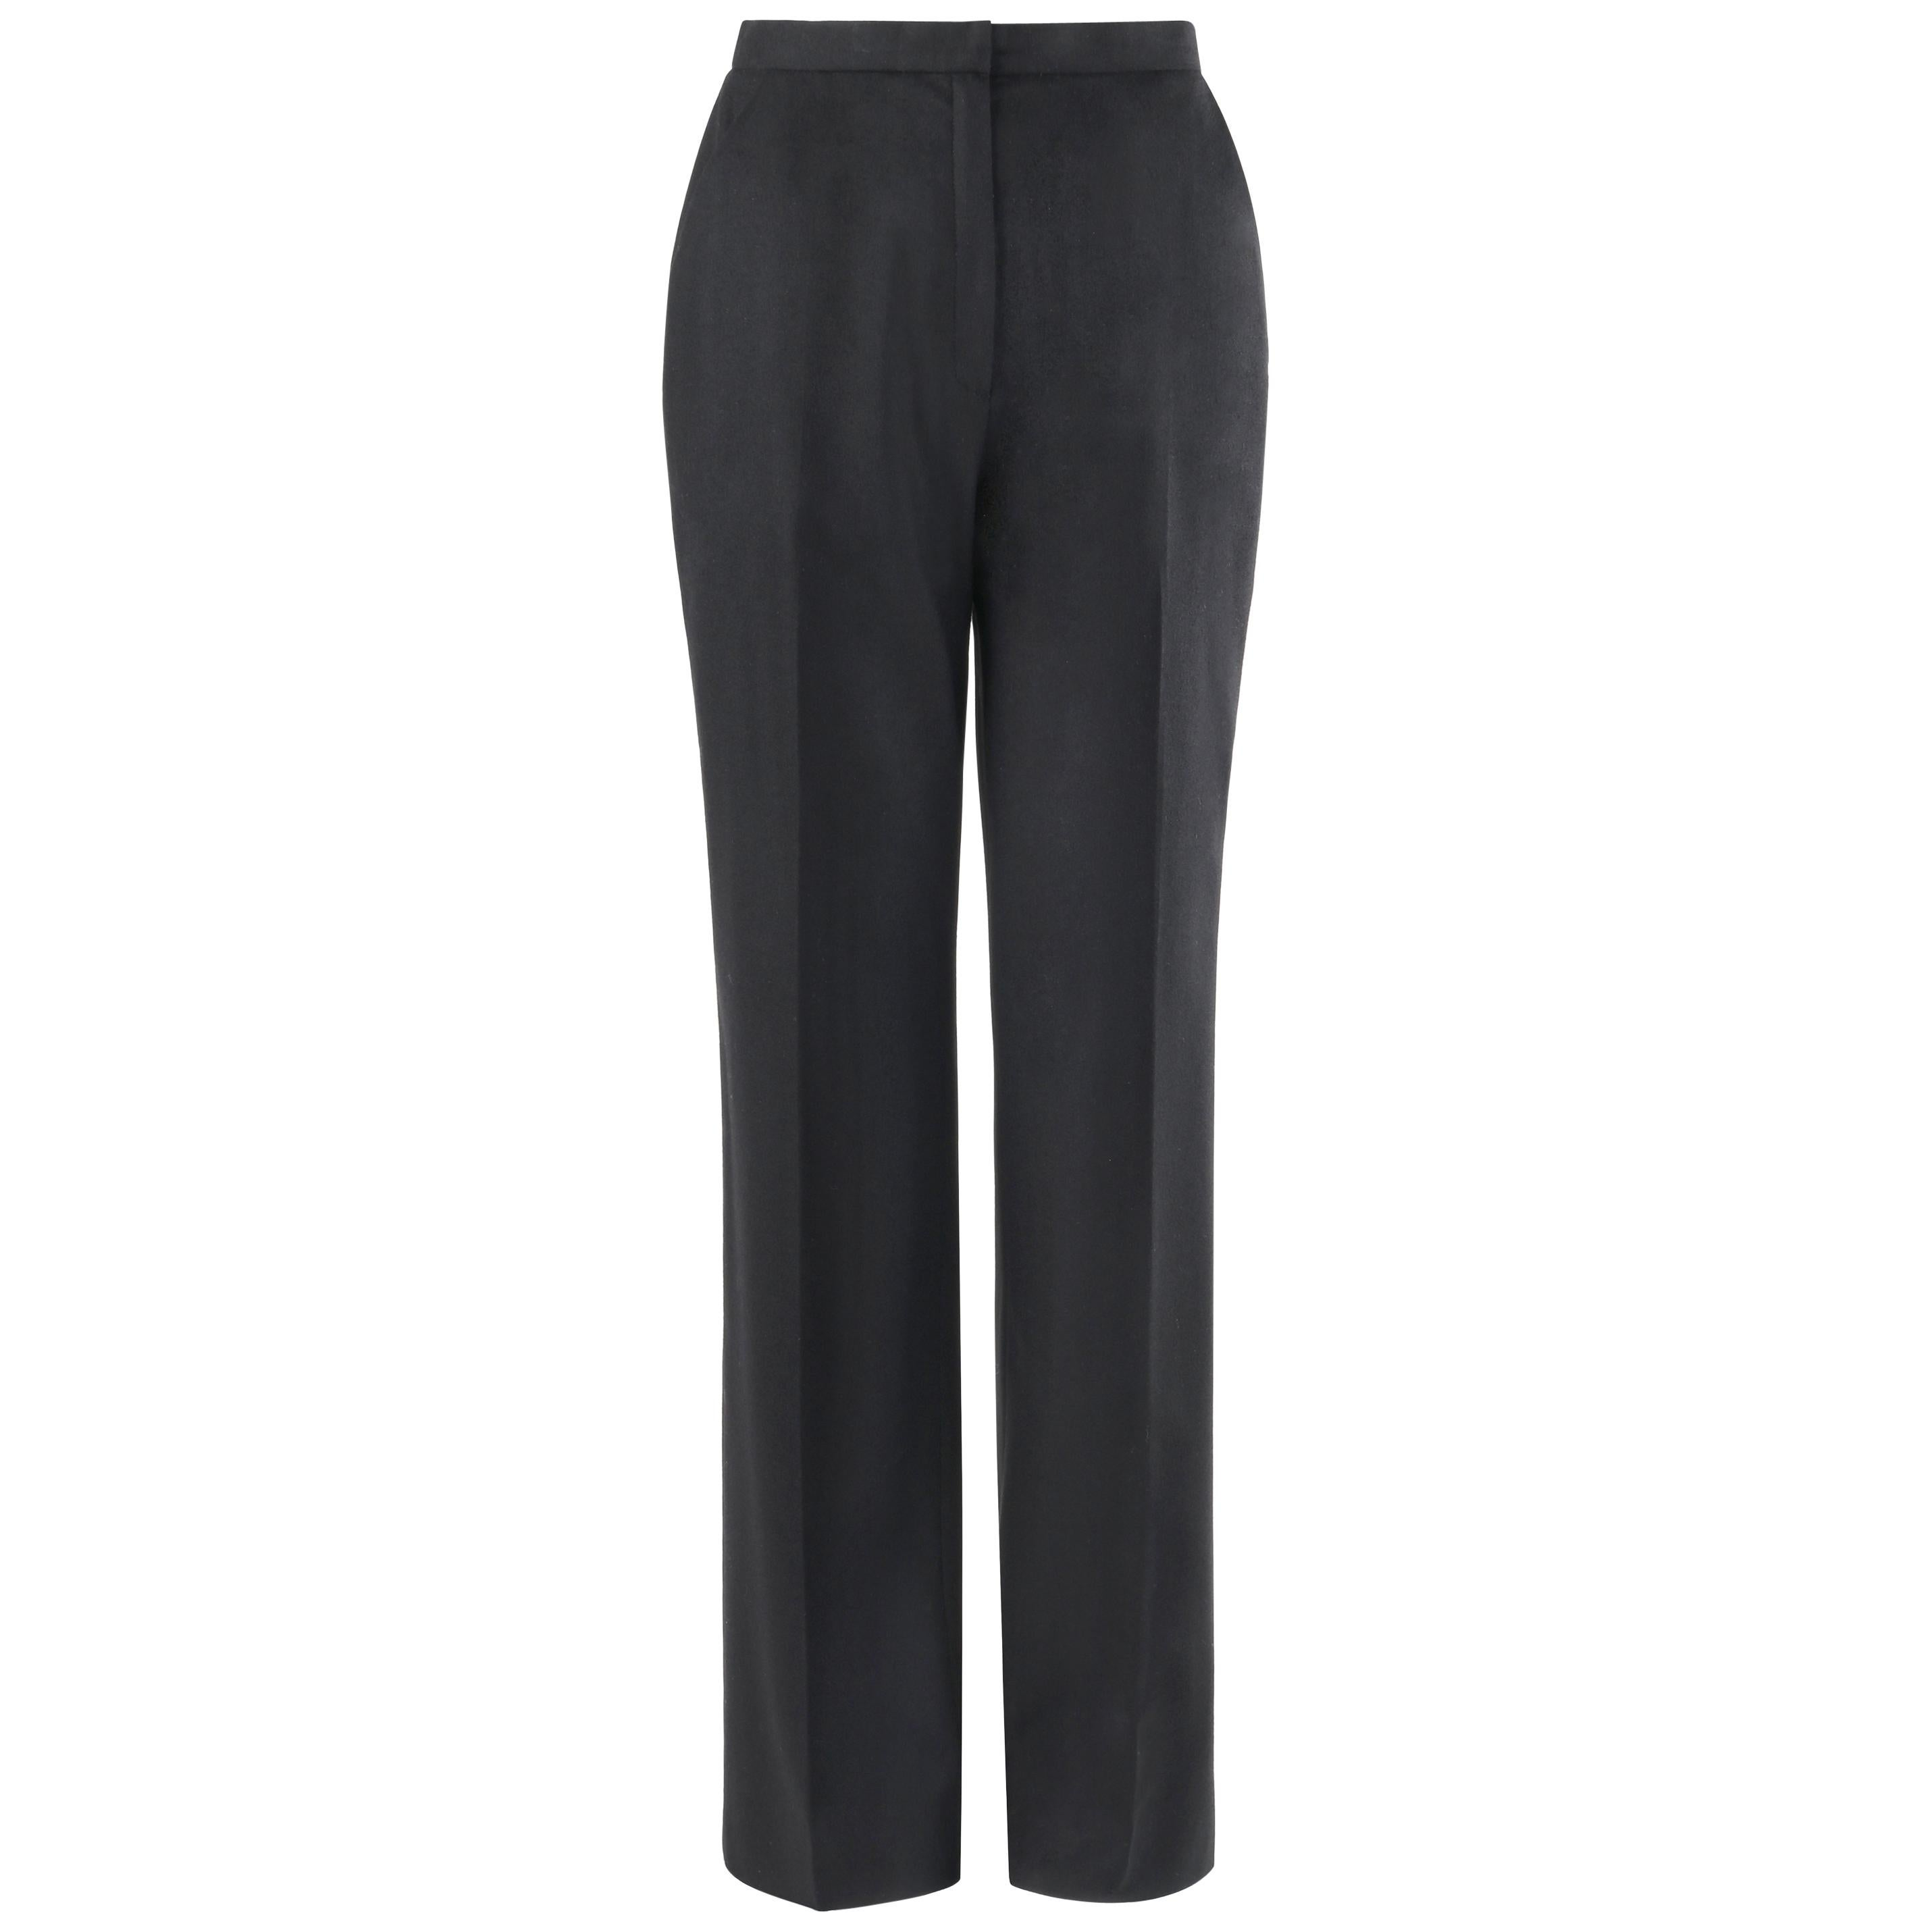 GIVENCHY Couture A/W 1998 ALEXANDER McQUEEN Black Straight Leg Trouser Pants